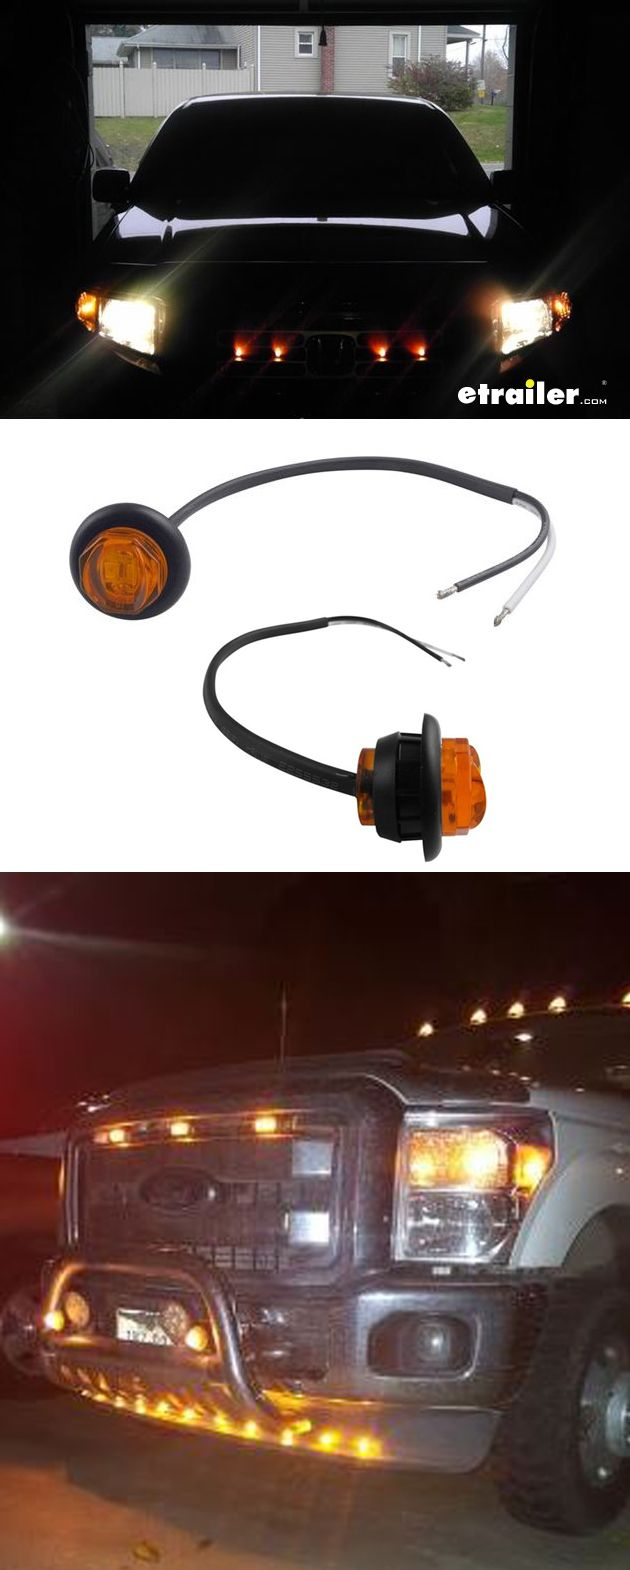 Uni lite led clearance and side marker light w grommet submersible 2 diodes amber lens optronics trailer lights